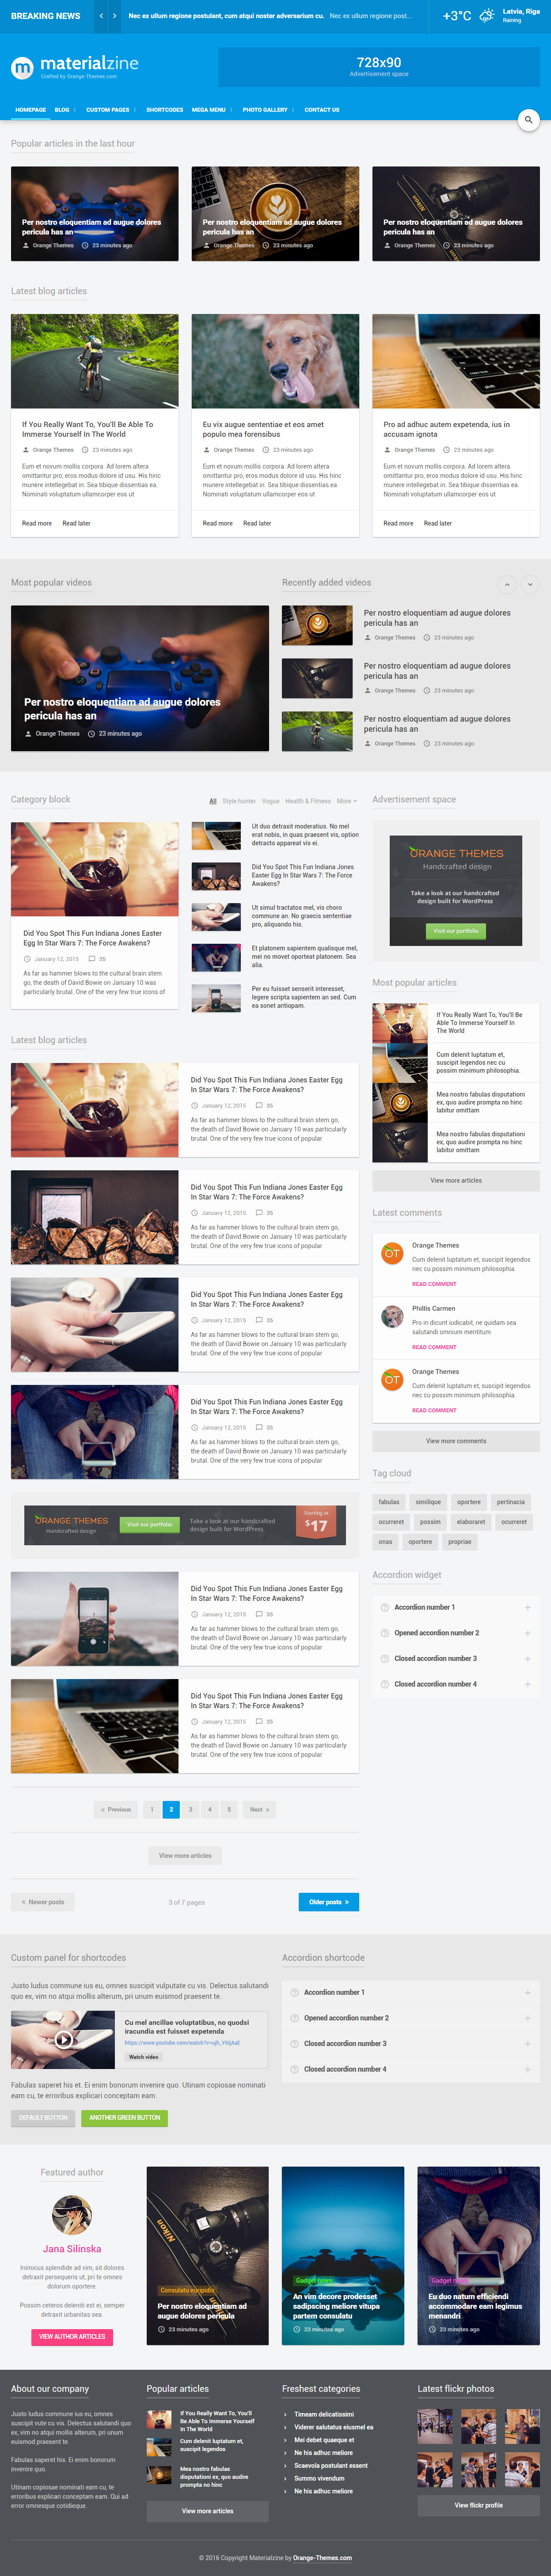 MaterialZine is Premium ful Responsive Retina #HTML5 #Magazine Template. #MaterialDesign. Mega Menu. Google Web Fonts. Test free demo at: http://www.responsivemiracle.com/materialzine-premium-responsive-blog-magazine-html5-template/